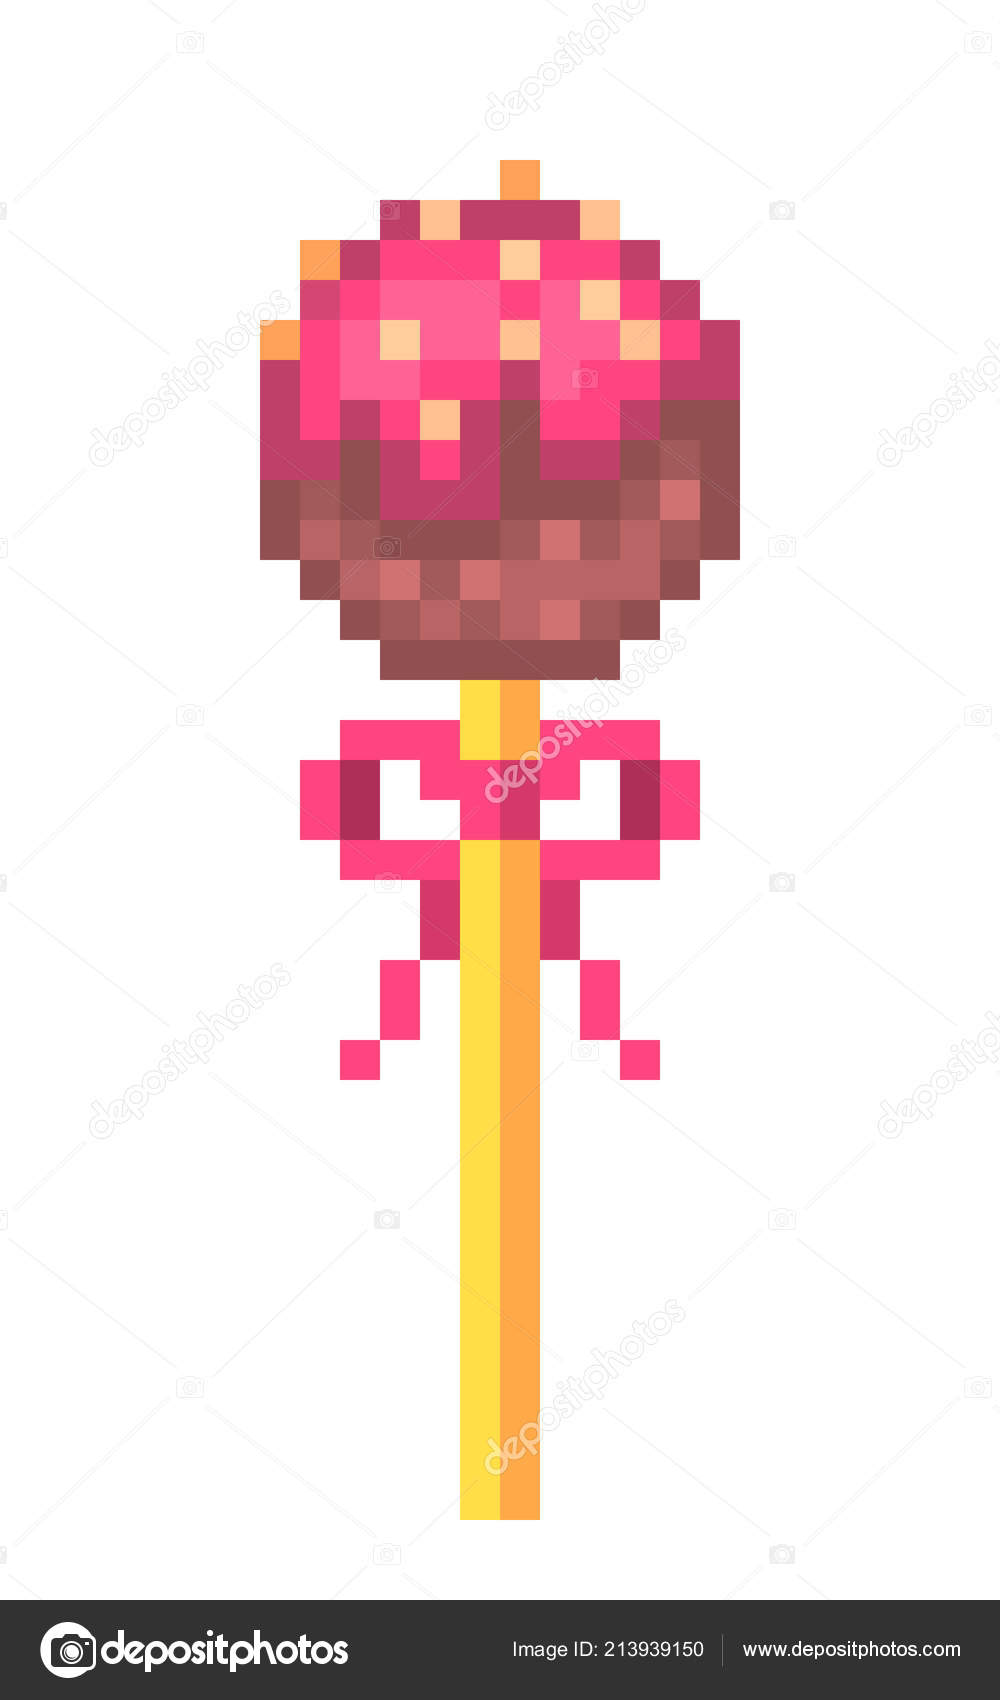 Pixel Art Cake Pop Chocolate Cake Pop Dripping Icing Nuts